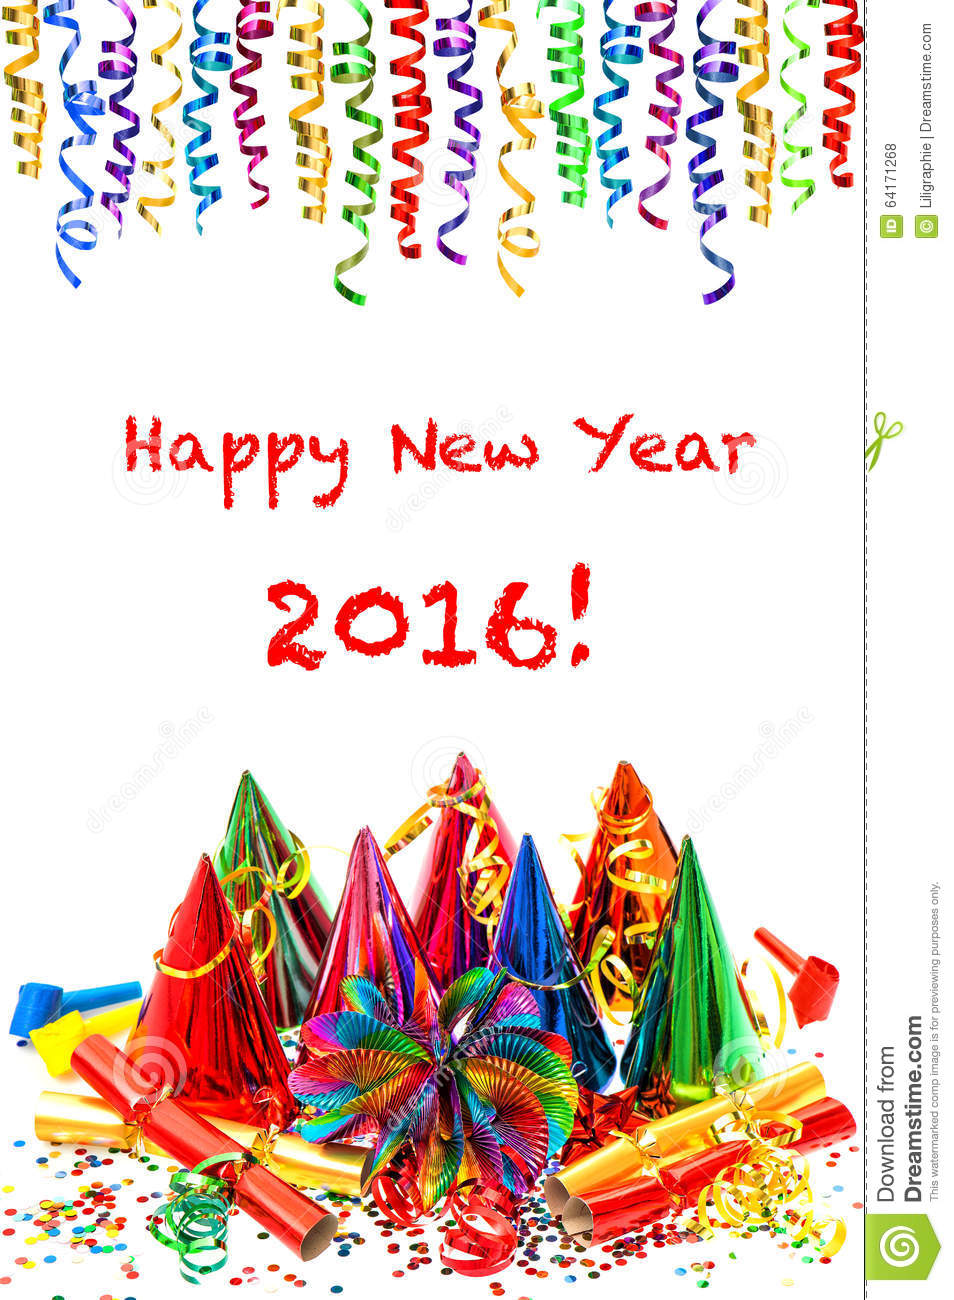 colorful new year decoration - photo #30